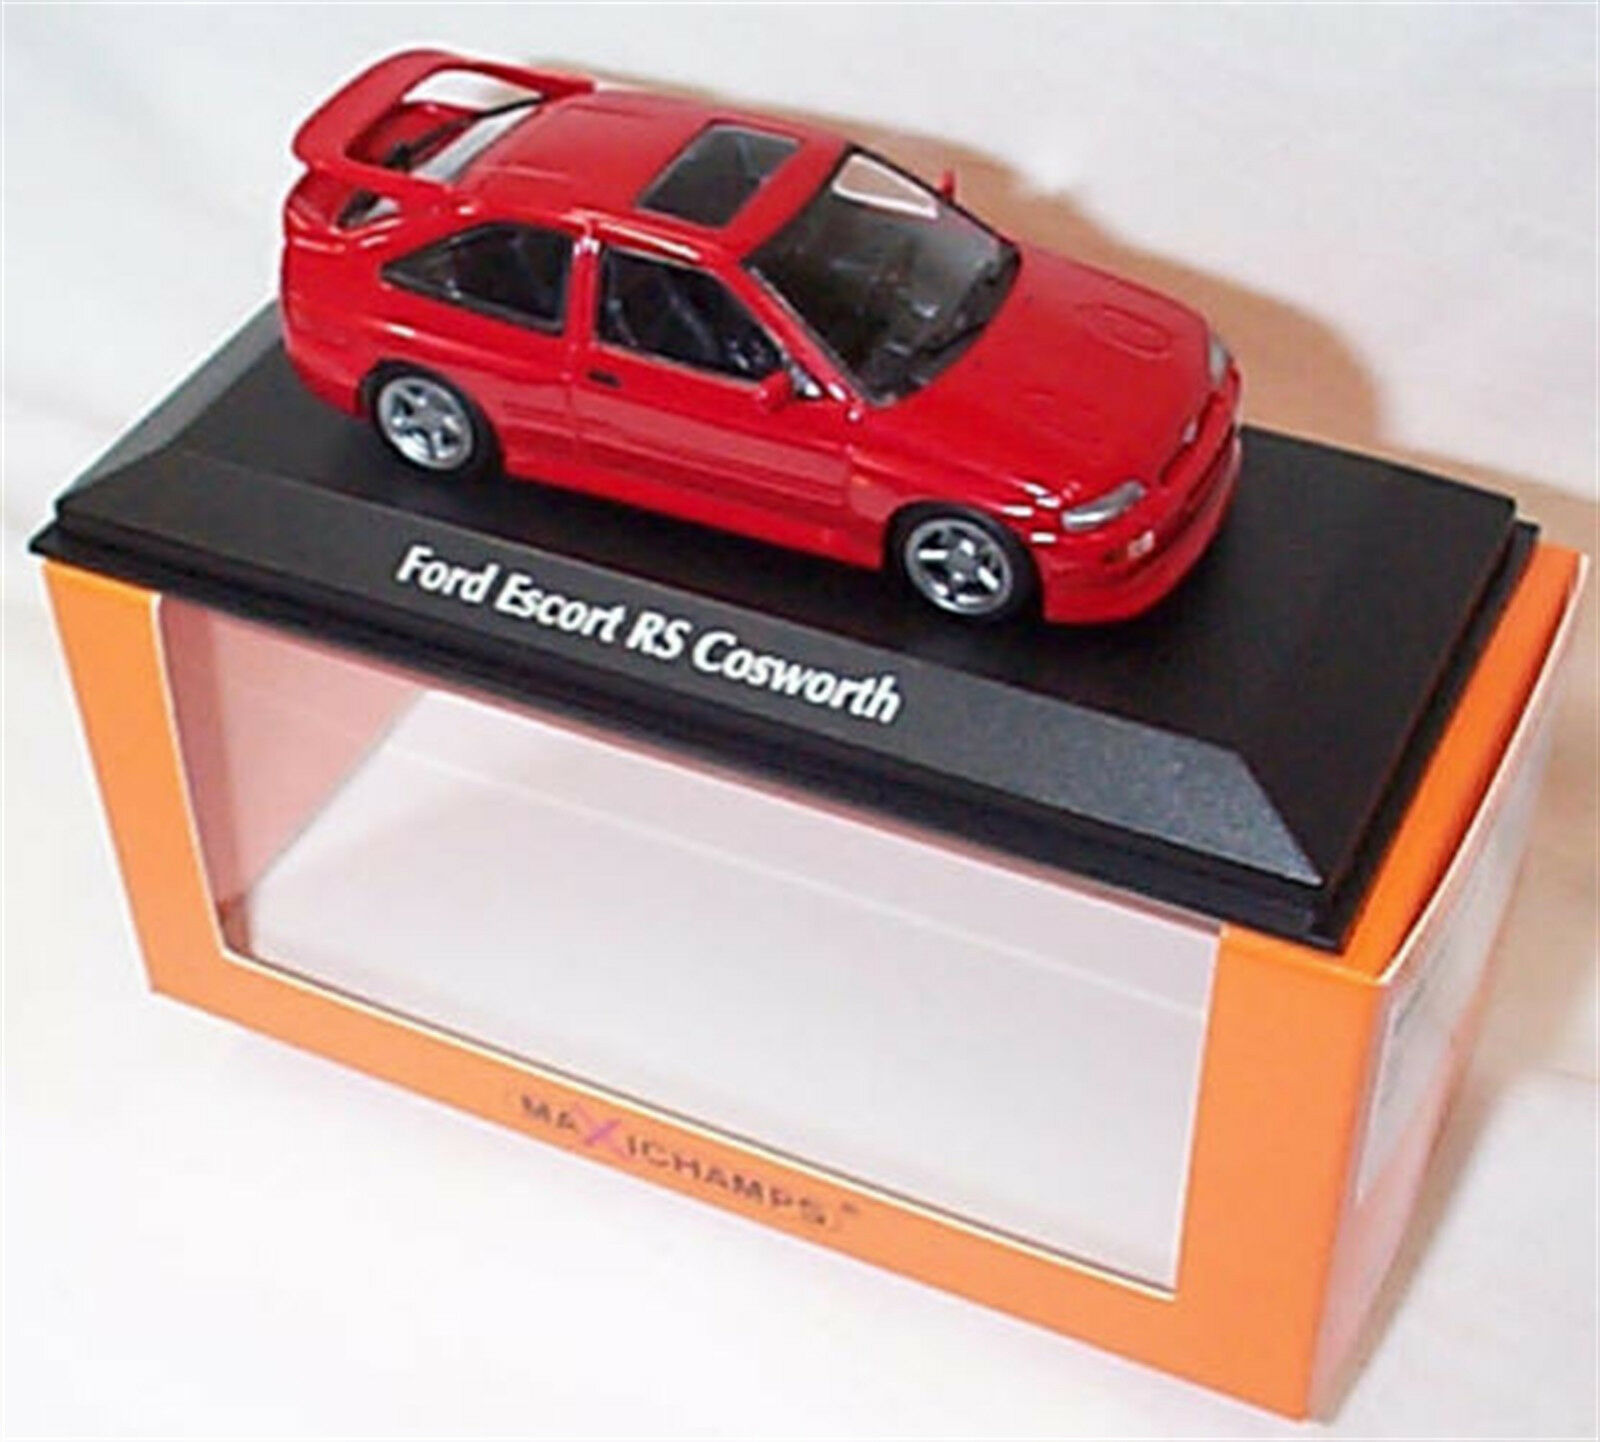 Ford Escort RS Cosworth 1992 RED New in Box  1-43 Minichamps 940082100